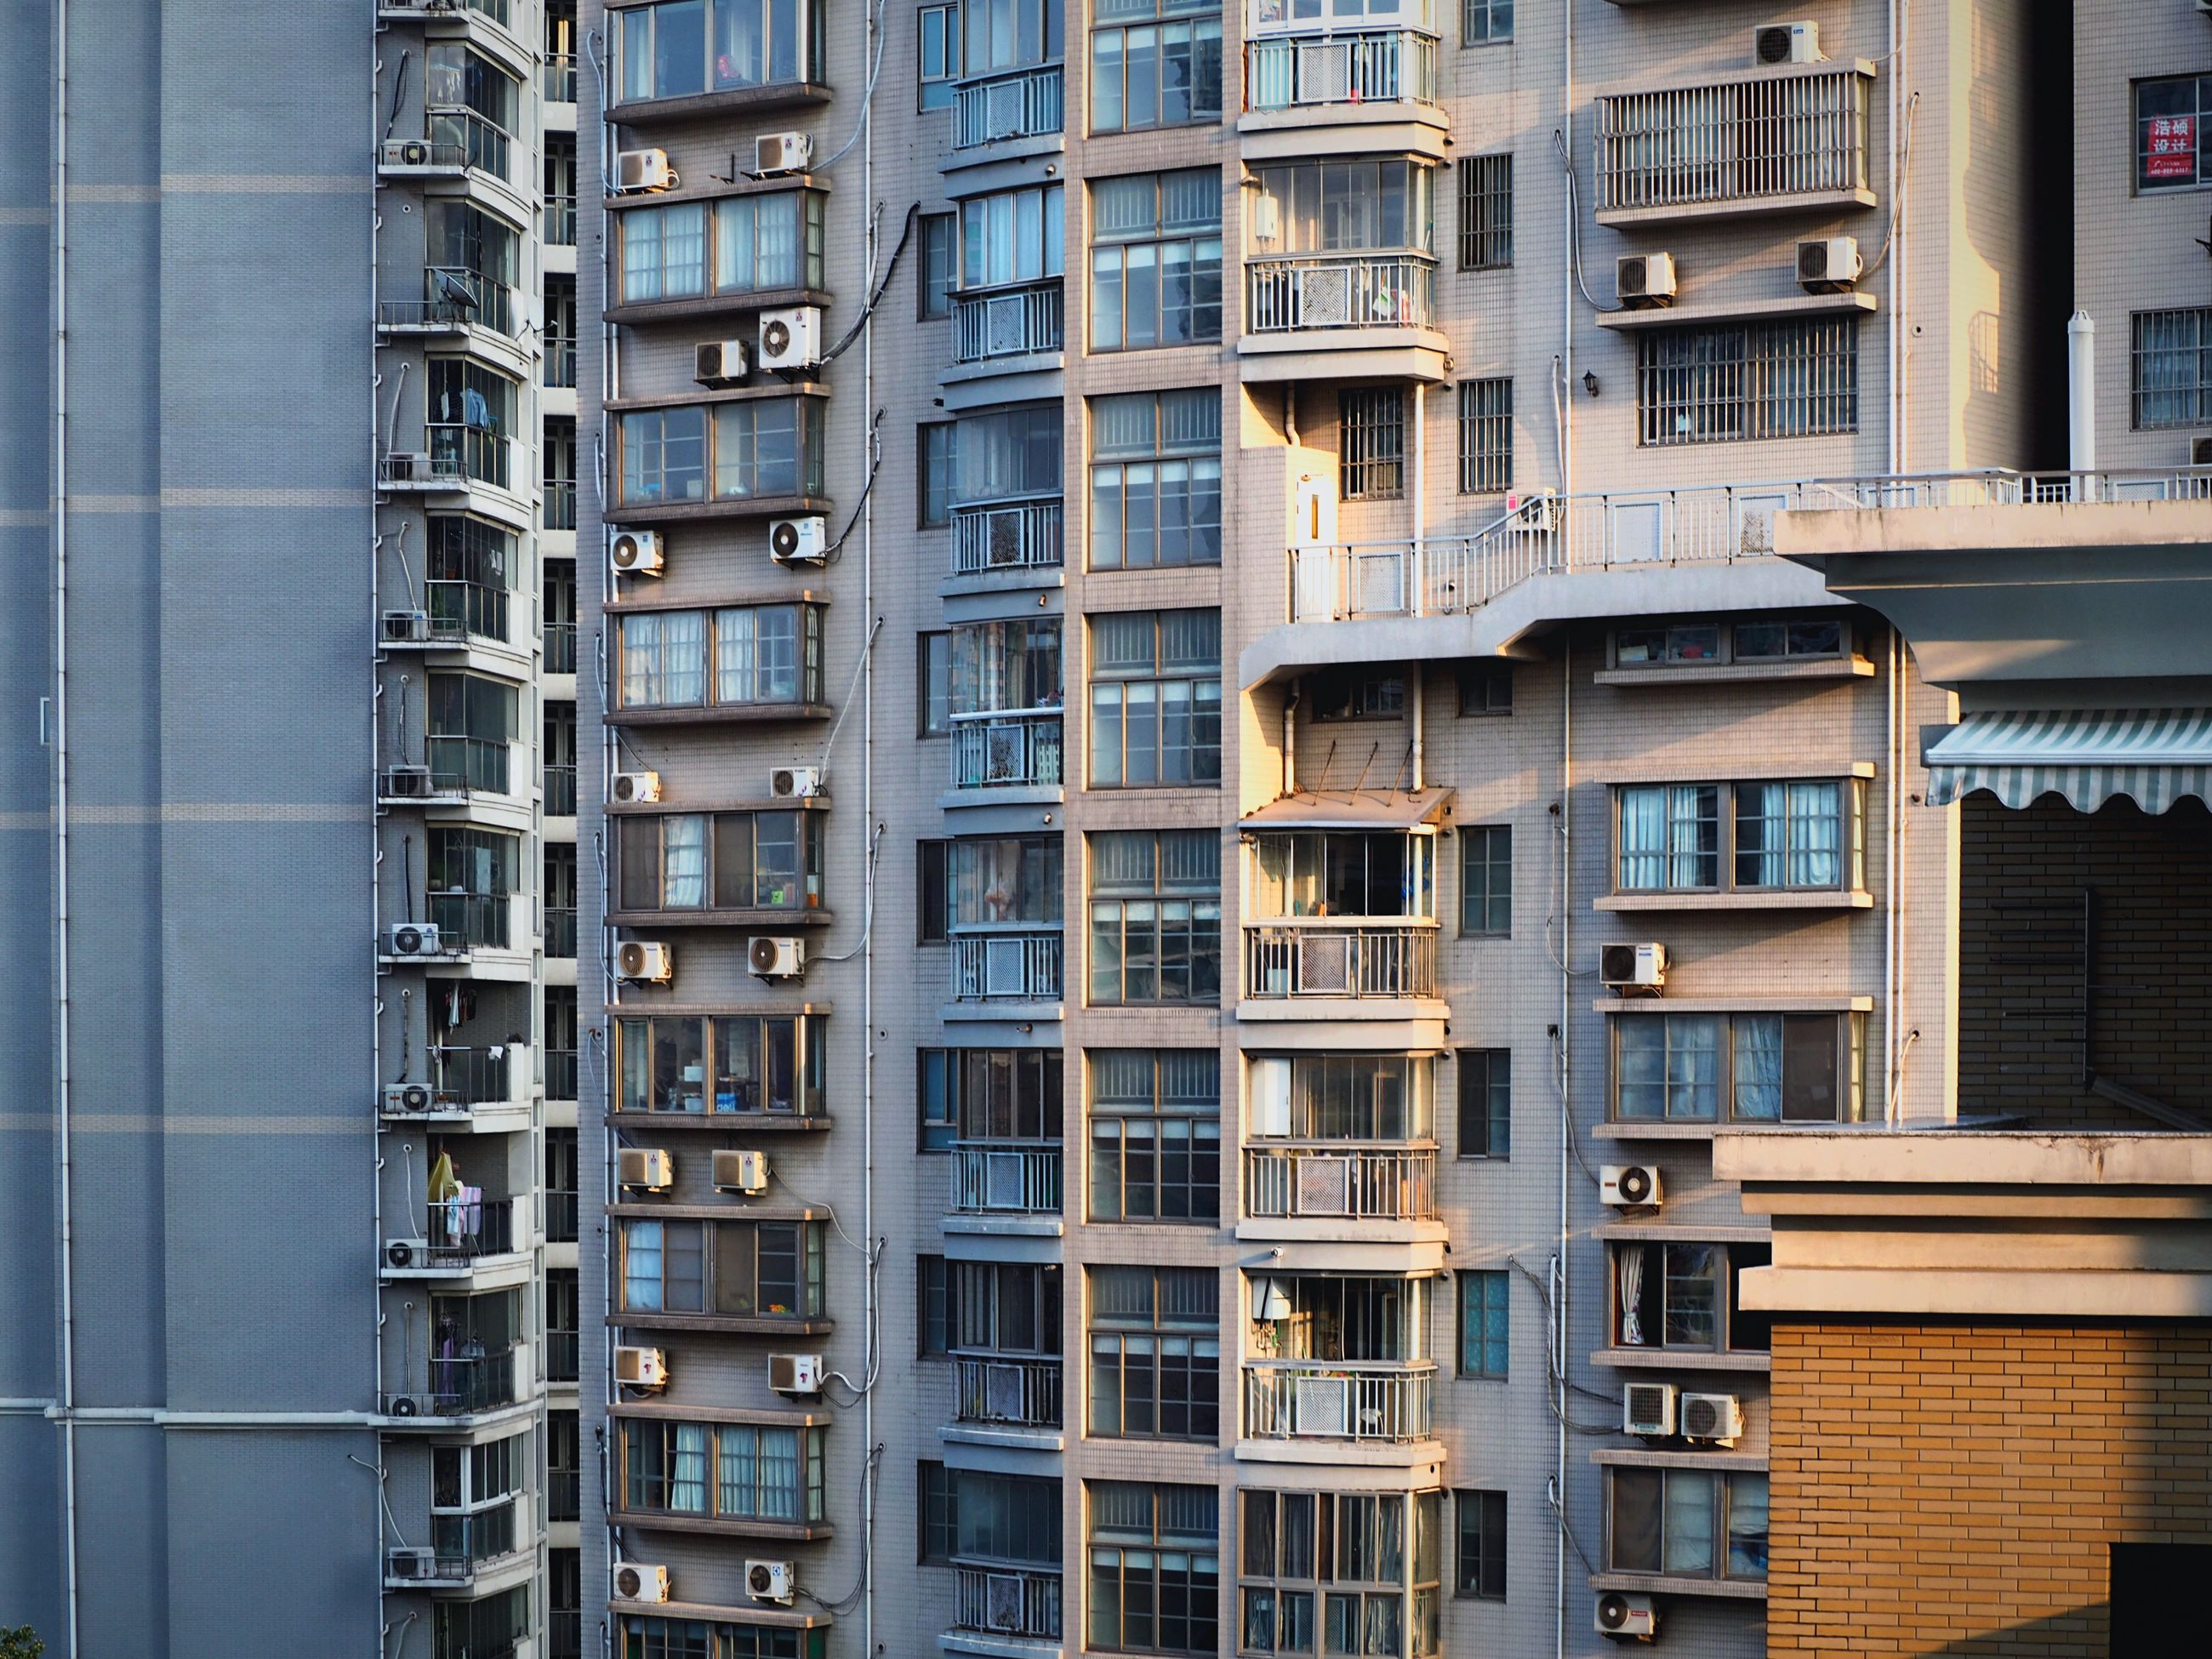 architecture, building exterior, built structure, window, city, building, apartment, residential building, residential structure, full frame, low angle view, balcony, modern, in a row, repetition, office building, city life, backgrounds, day, no people